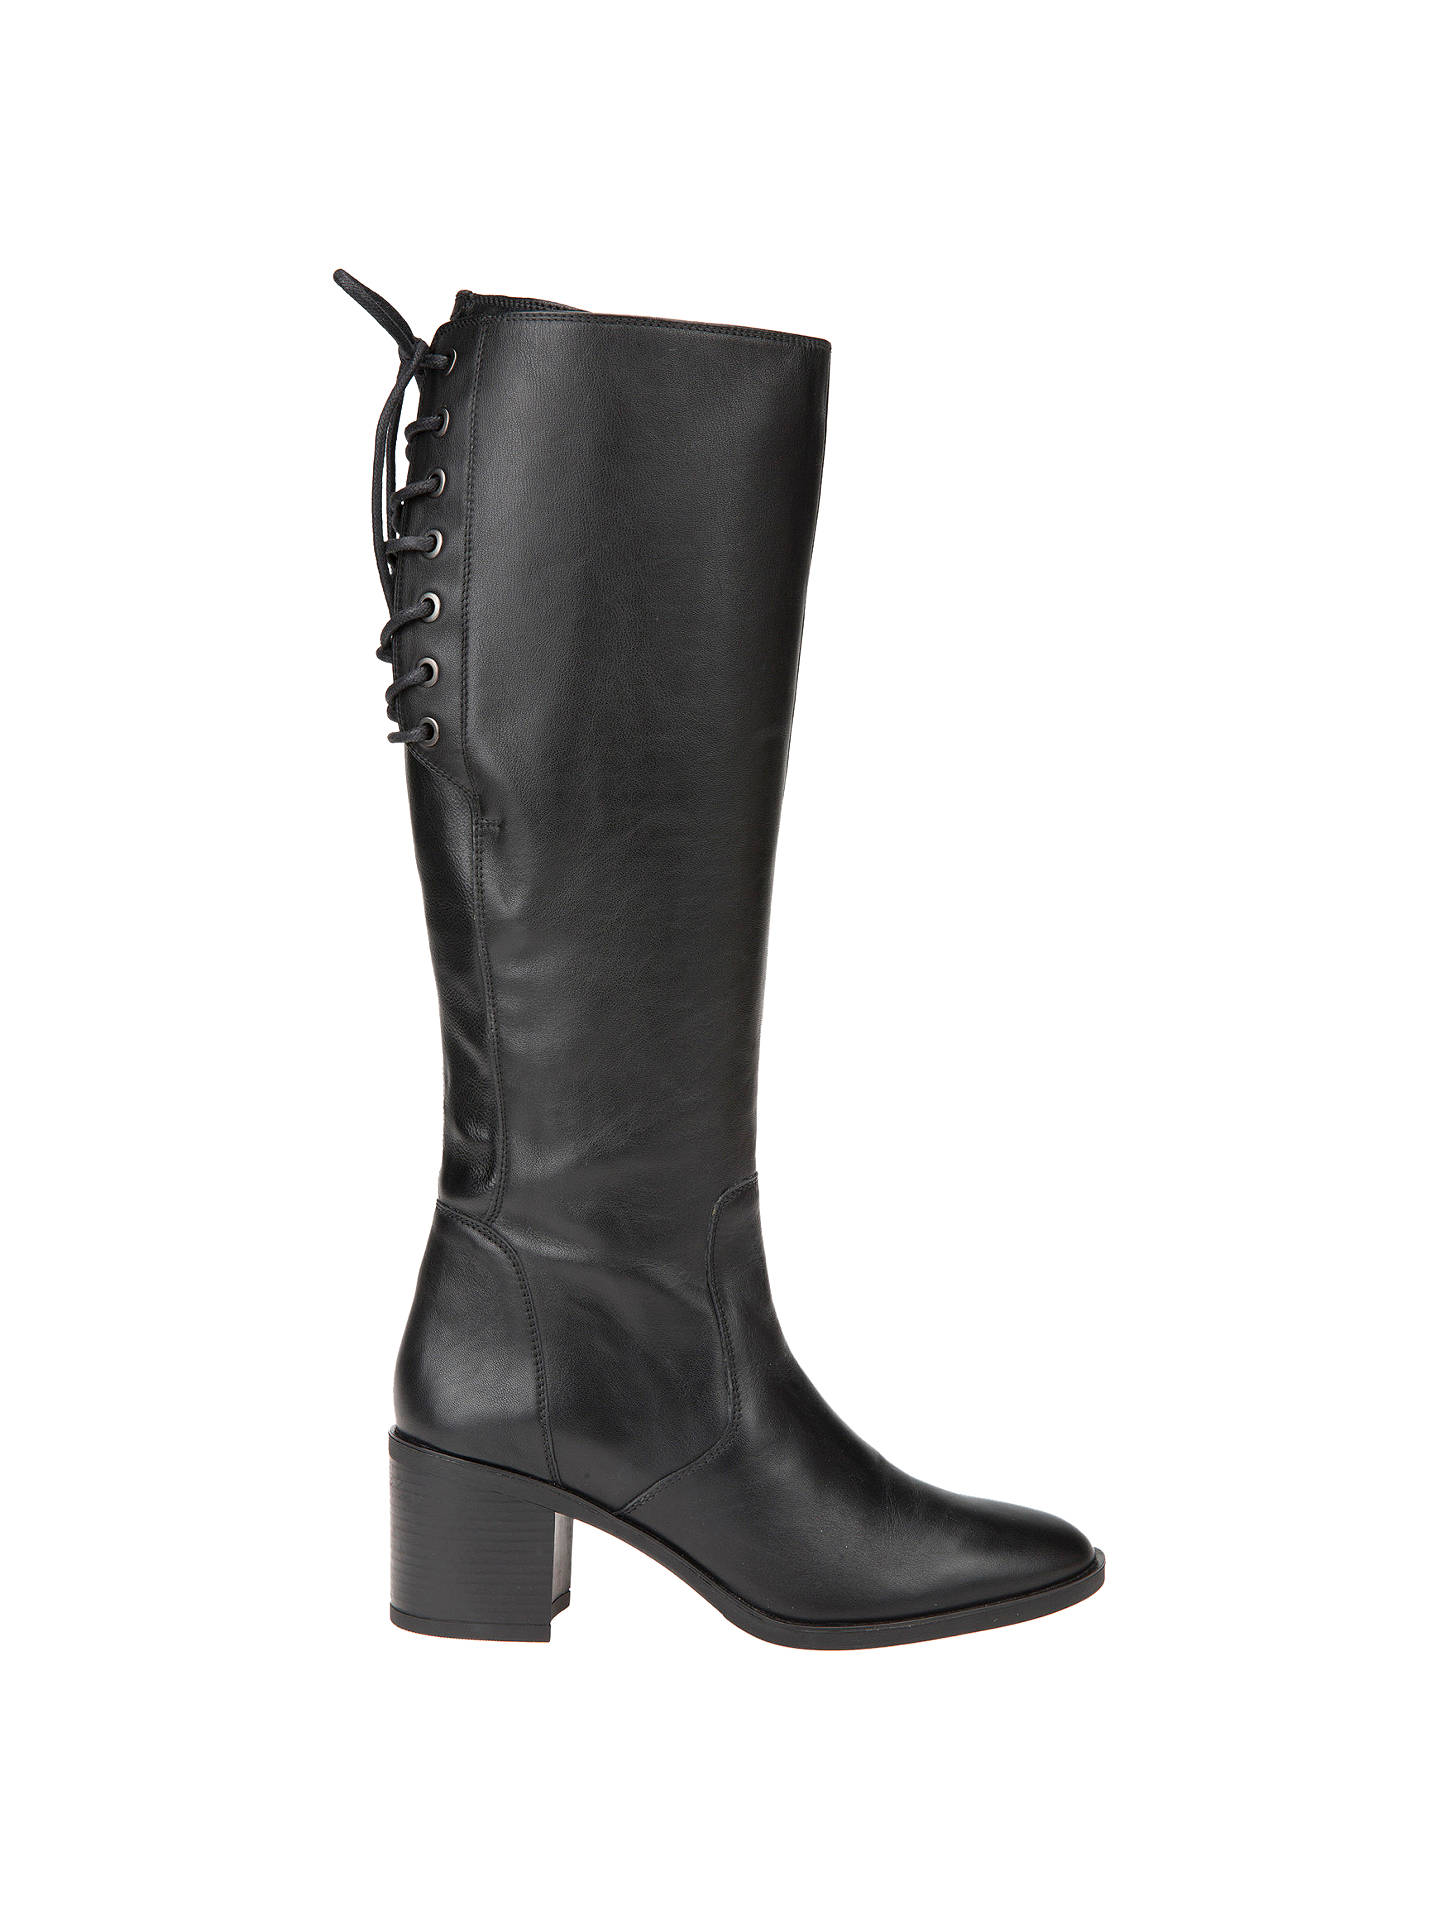 Geox Glynna Lace Up Knee High Boots, Black Leather at John